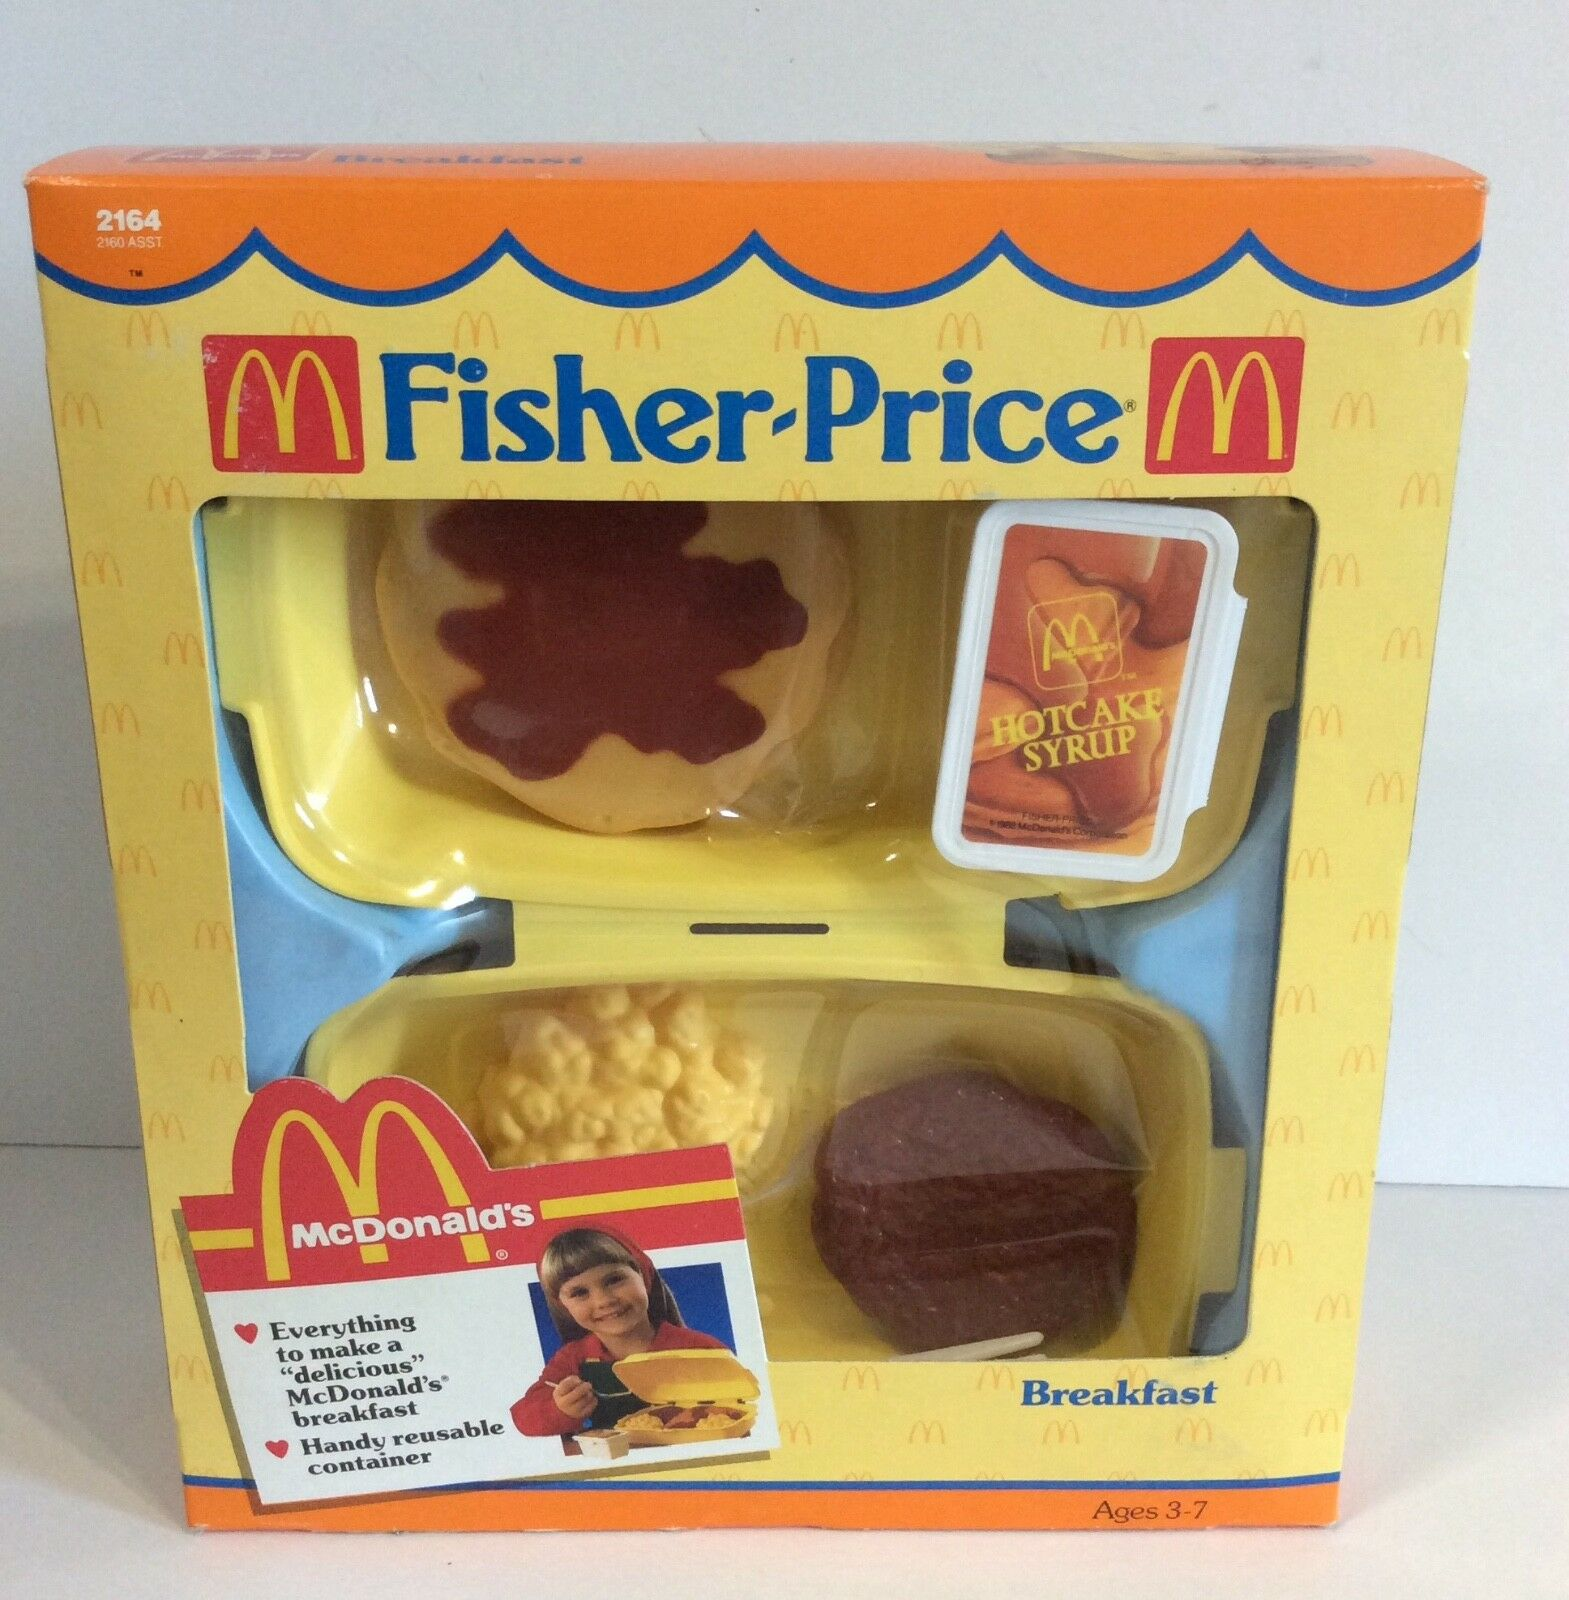 Fisher Price McDonald's 1988 Fun With Food Breakfast Playset - Mod 2164 - NEW